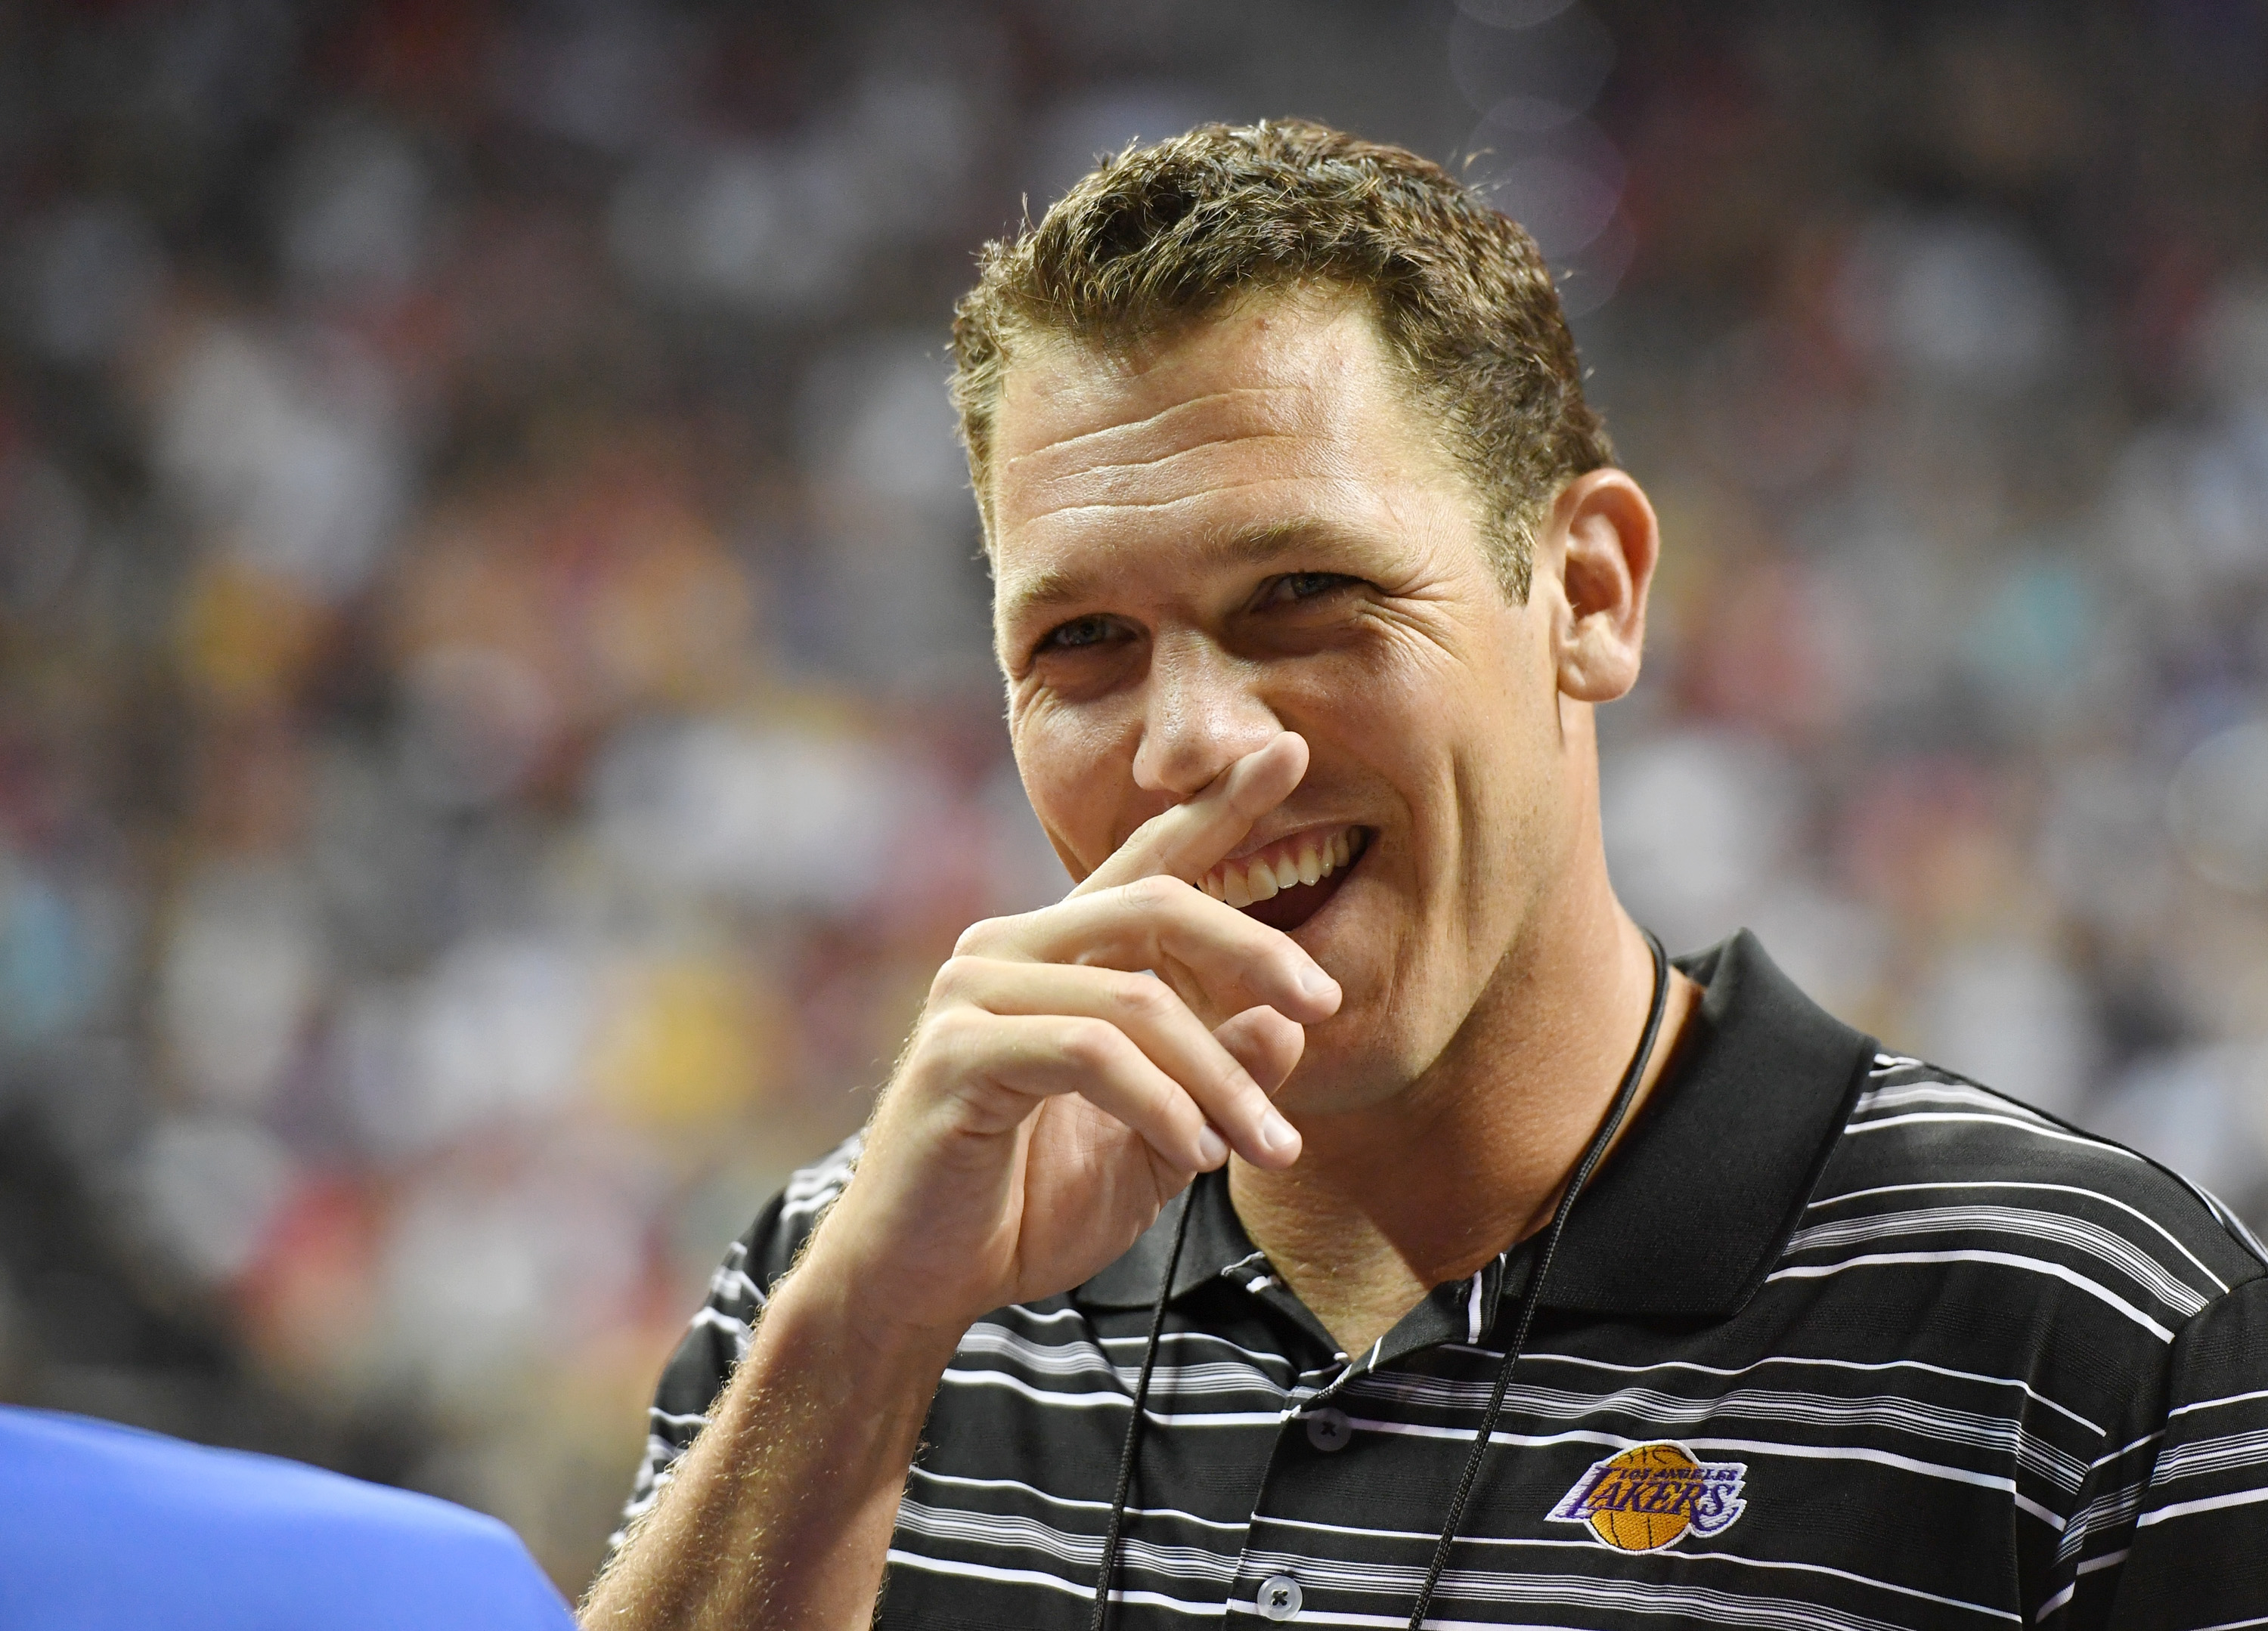 Luke Walton got hired as the Kings' new coach less than 24 hours after leaving the Lakers